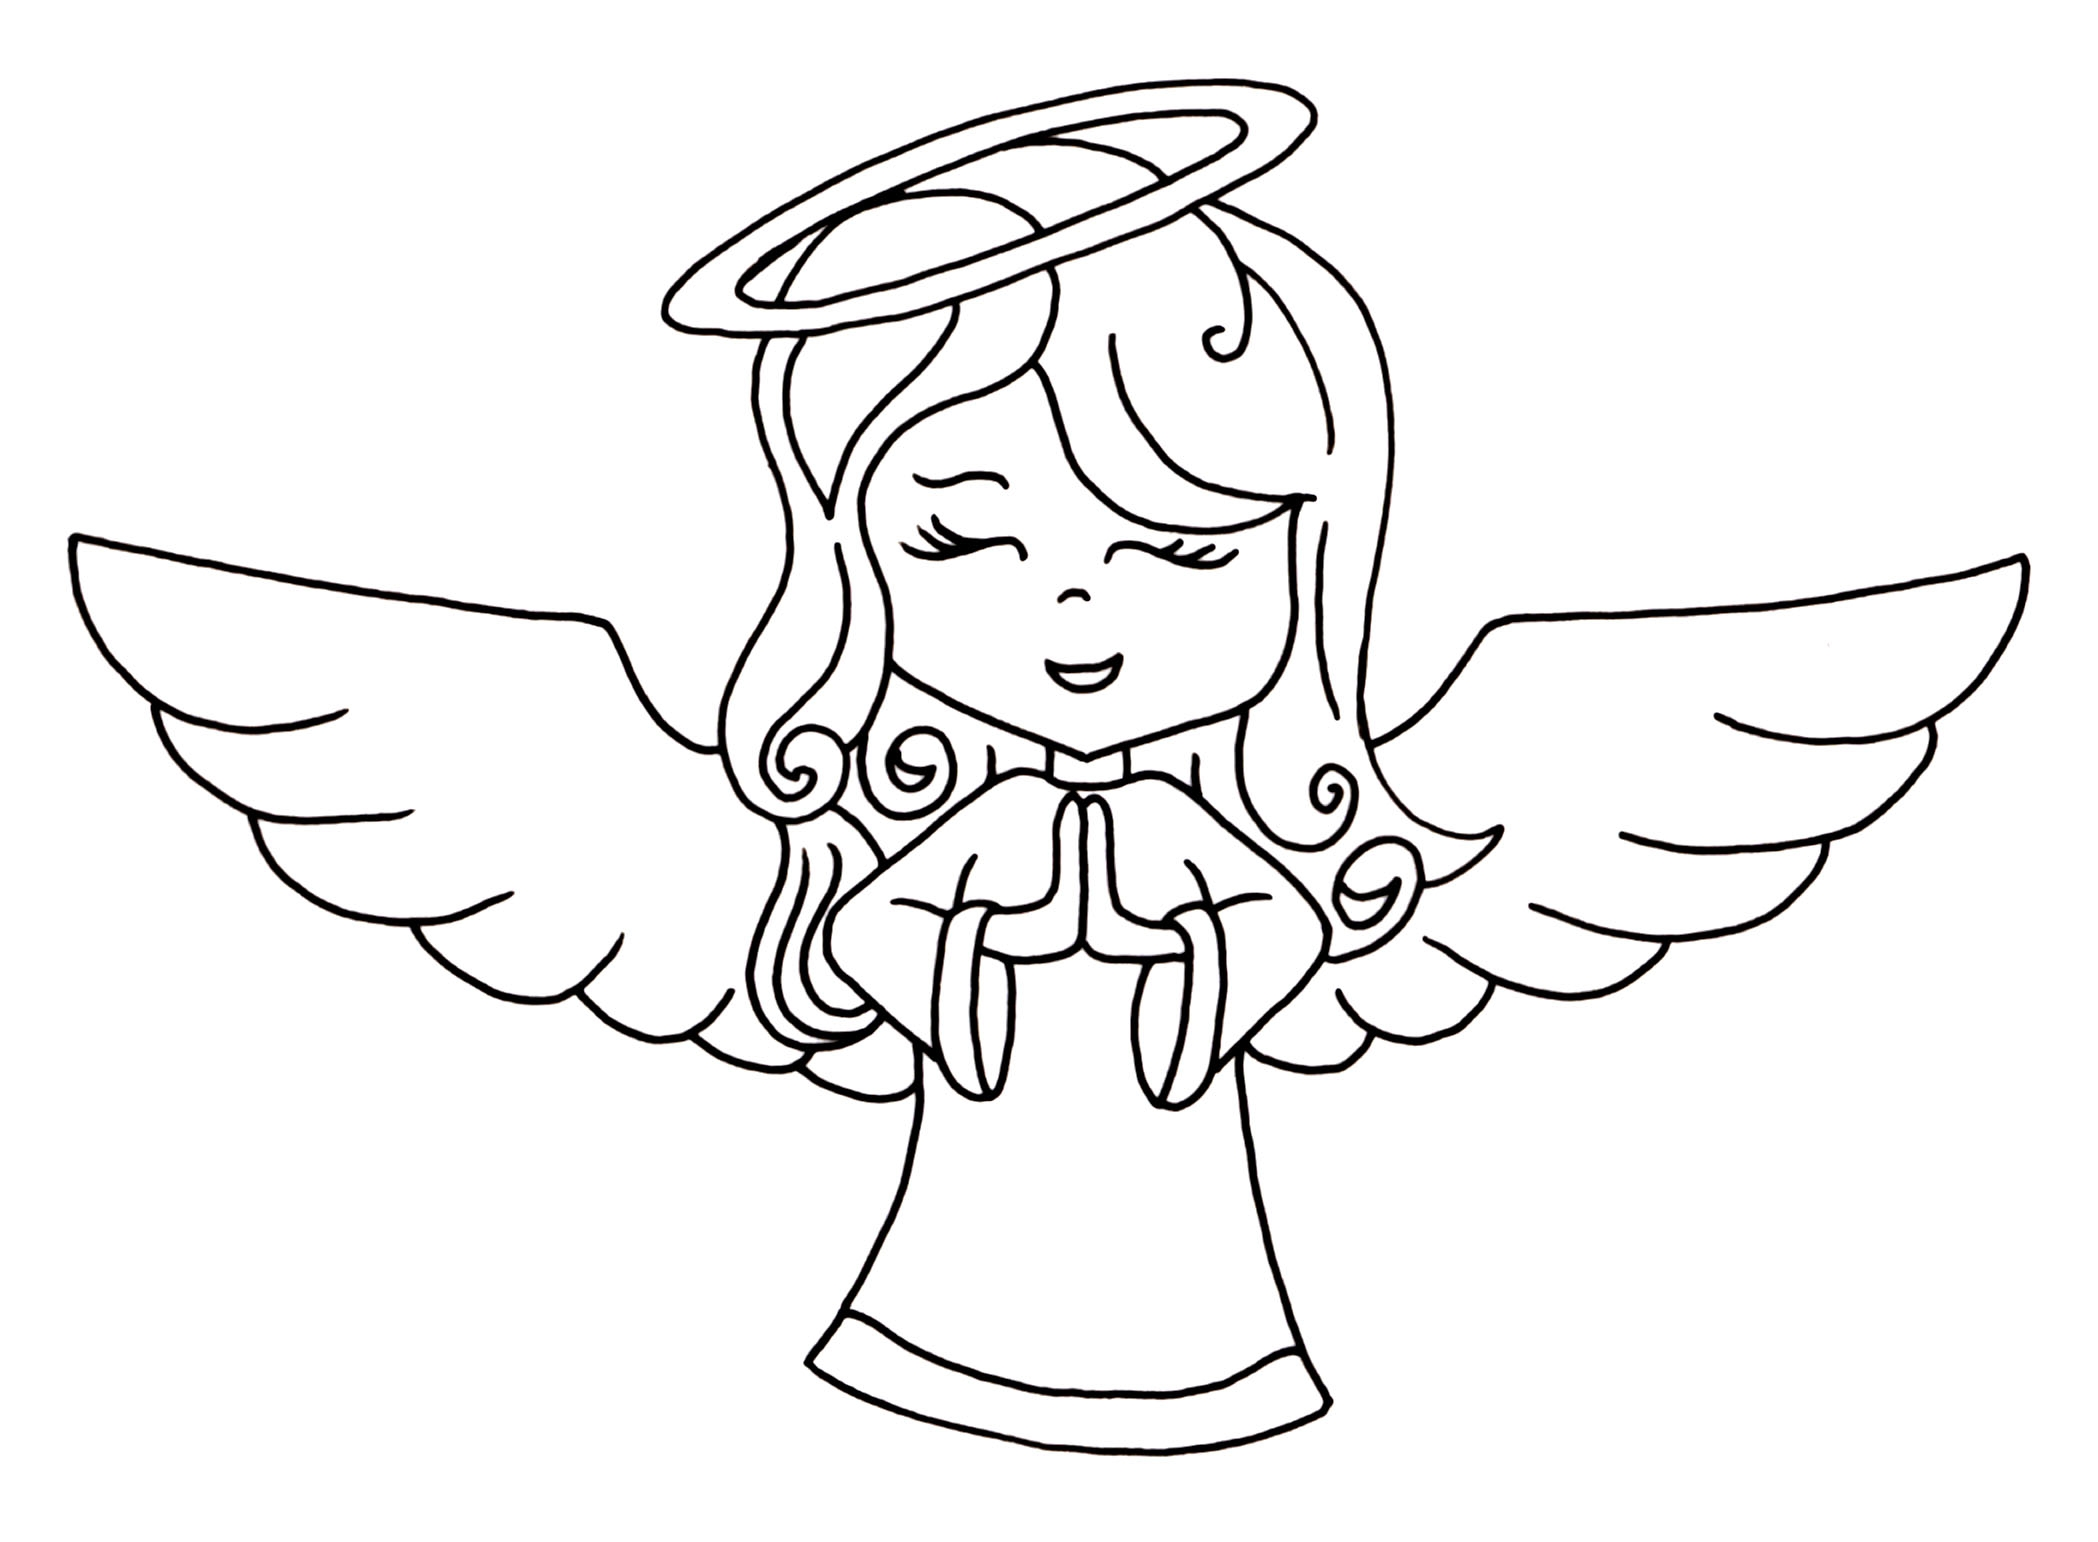 Angel line drawing clipart clip art library library Angel clipart black and white Lovely Angel Line Drawing Clip Art 54 ... clip art library library